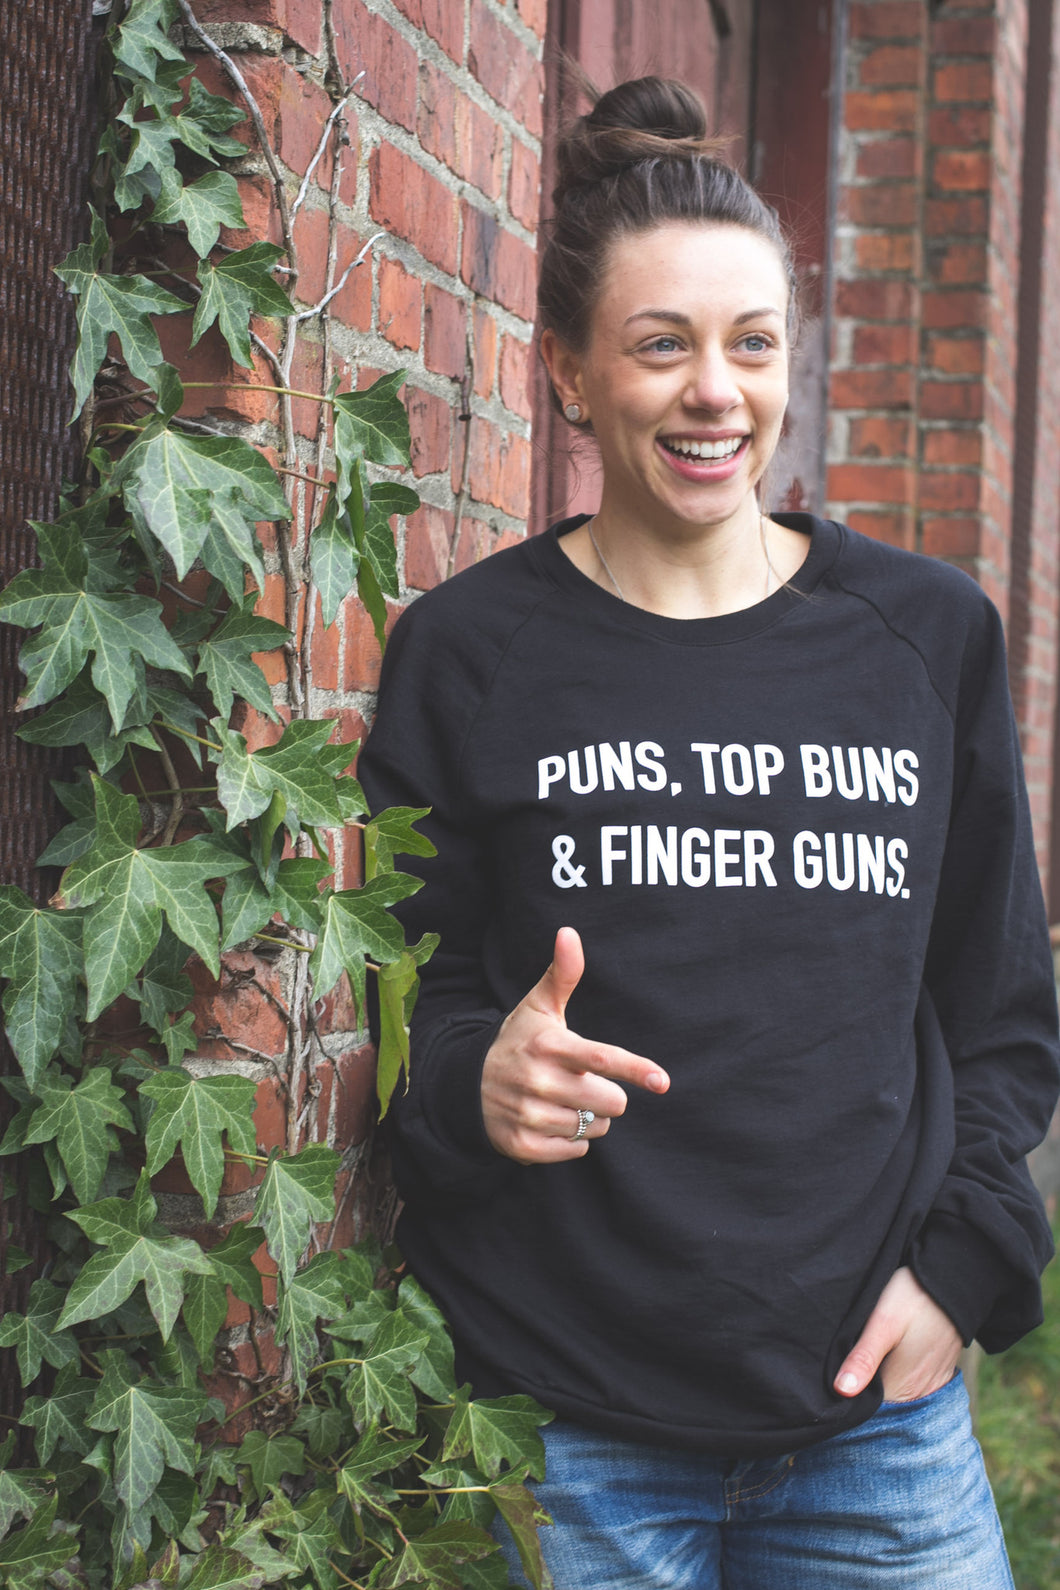 Puns, Top Buns & Finger Guns.